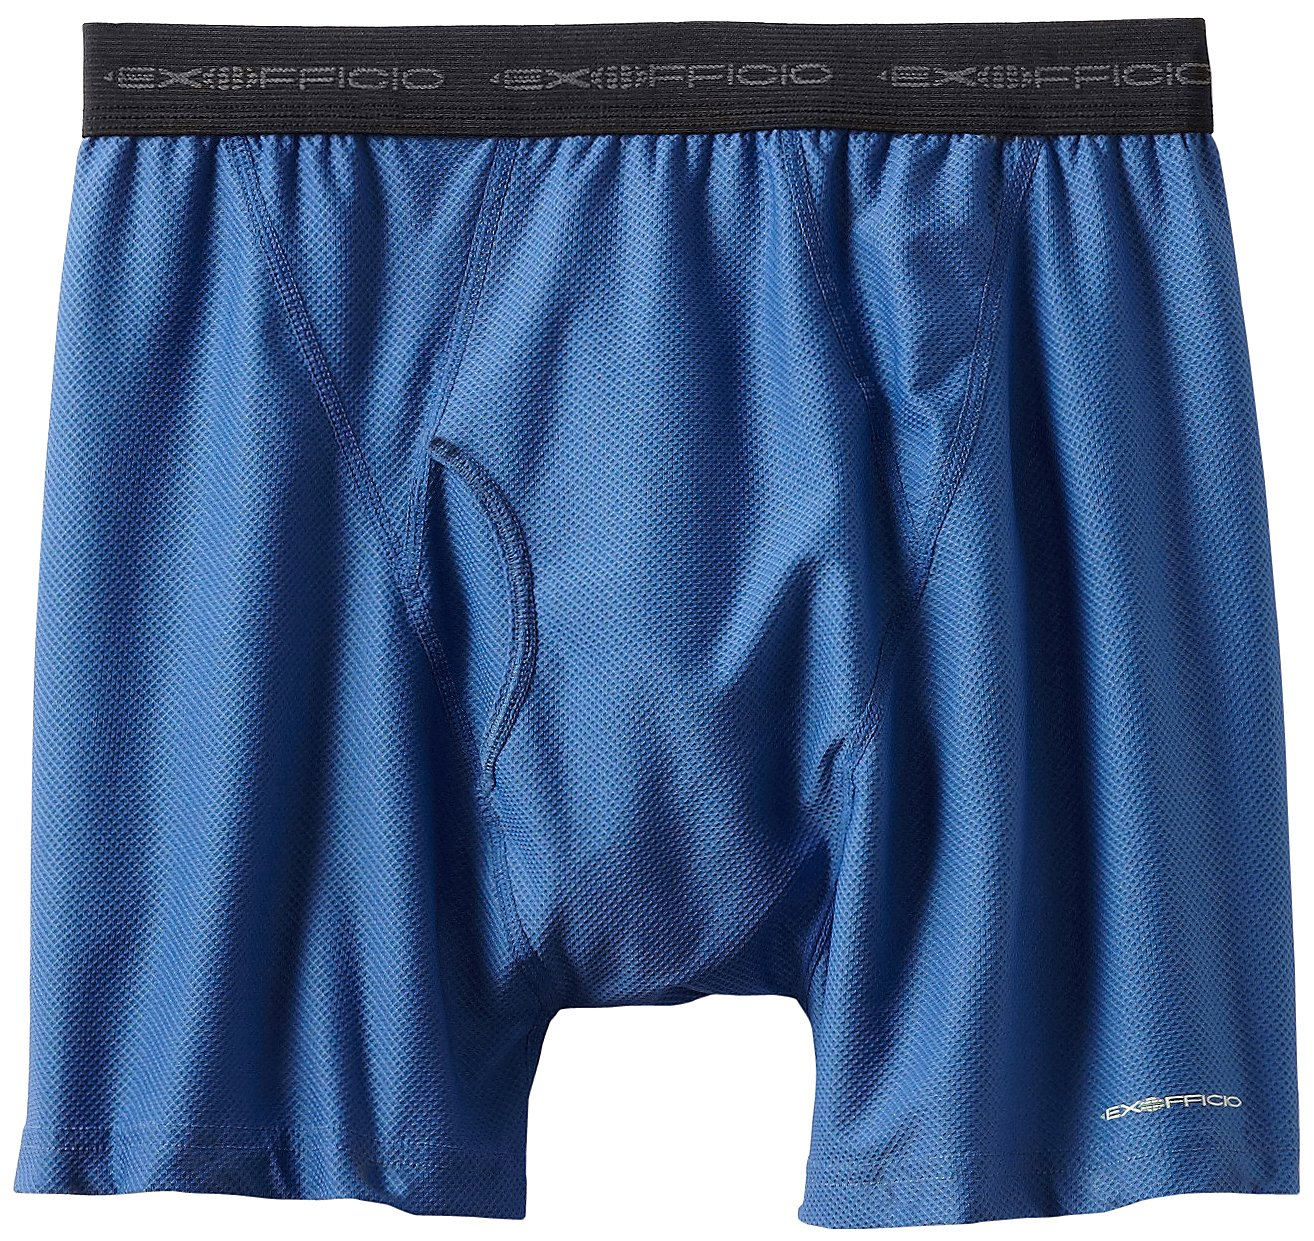 ExOfficio Men's Give-N-Go Boxer Brief Ocean